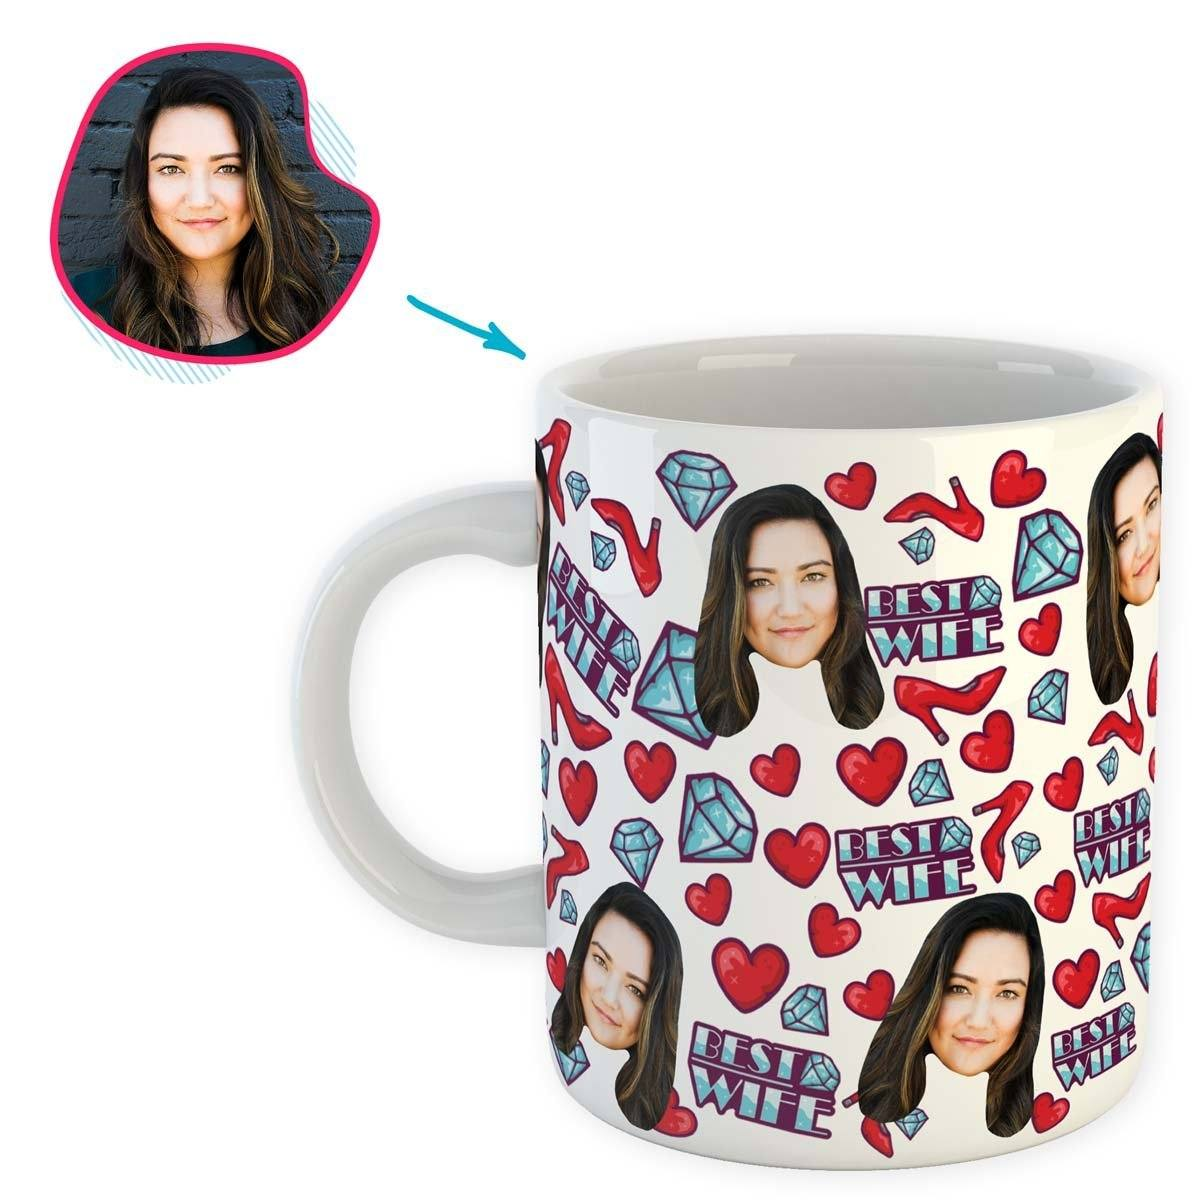 White Wife personalized mug with photo of face printed on it